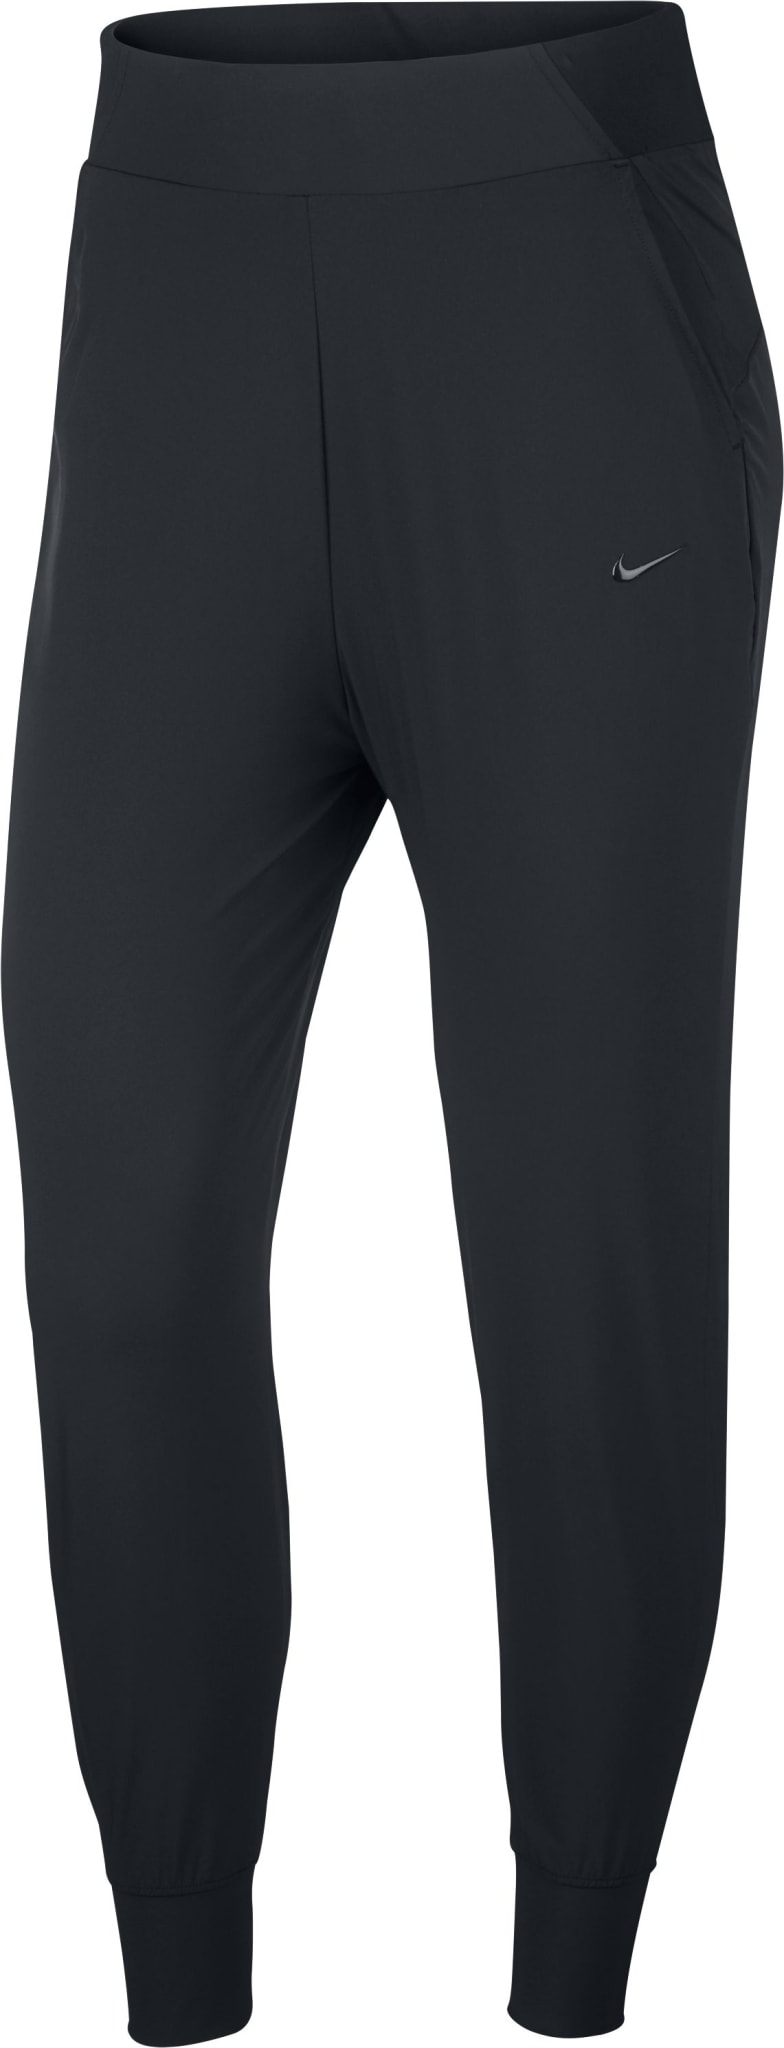 Bliss Luxe Training Pants W